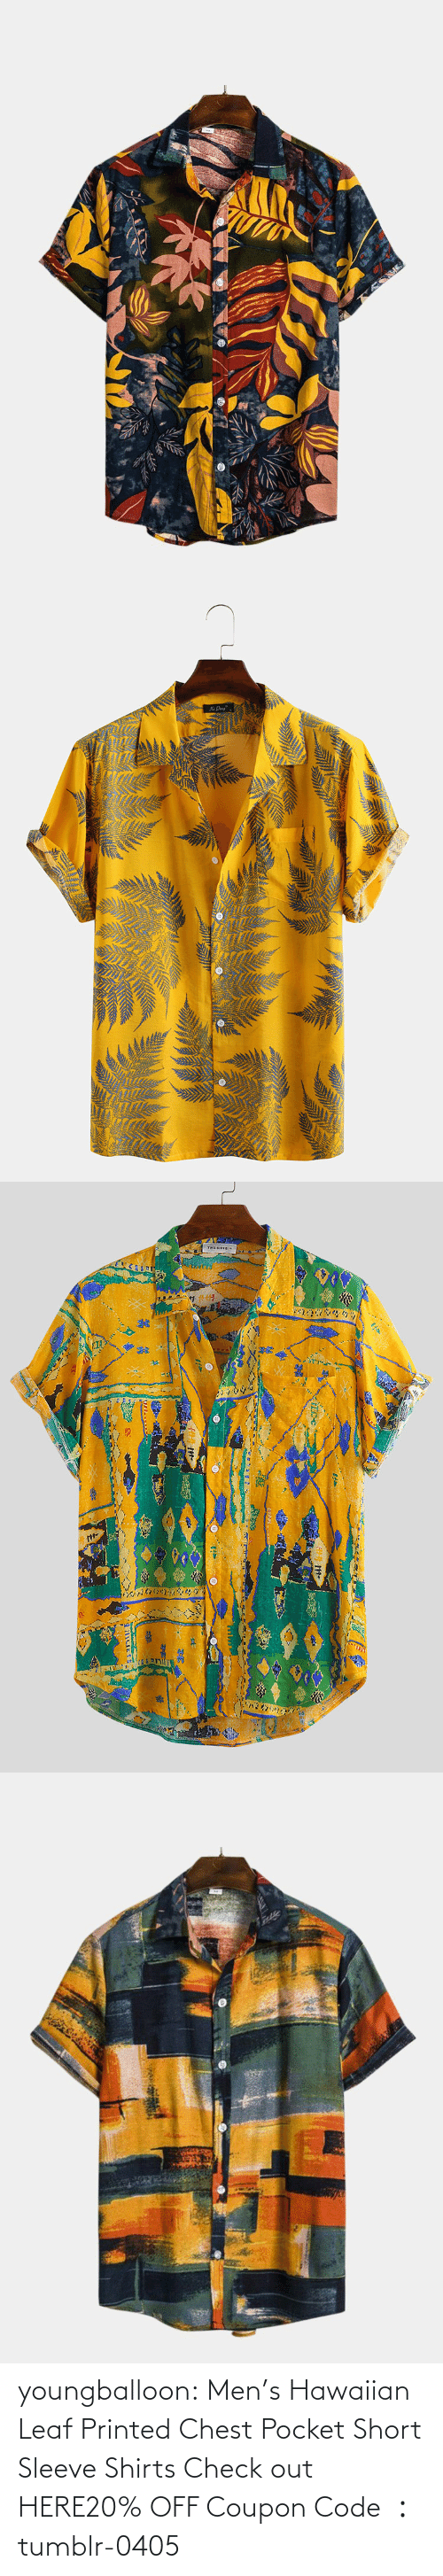 coupon: youngballoon:  Men's Hawaiian Leaf Printed Chest Pocket Short Sleeve Shirts Check out HERE20% OFF Coupon Code : tumblr-0405